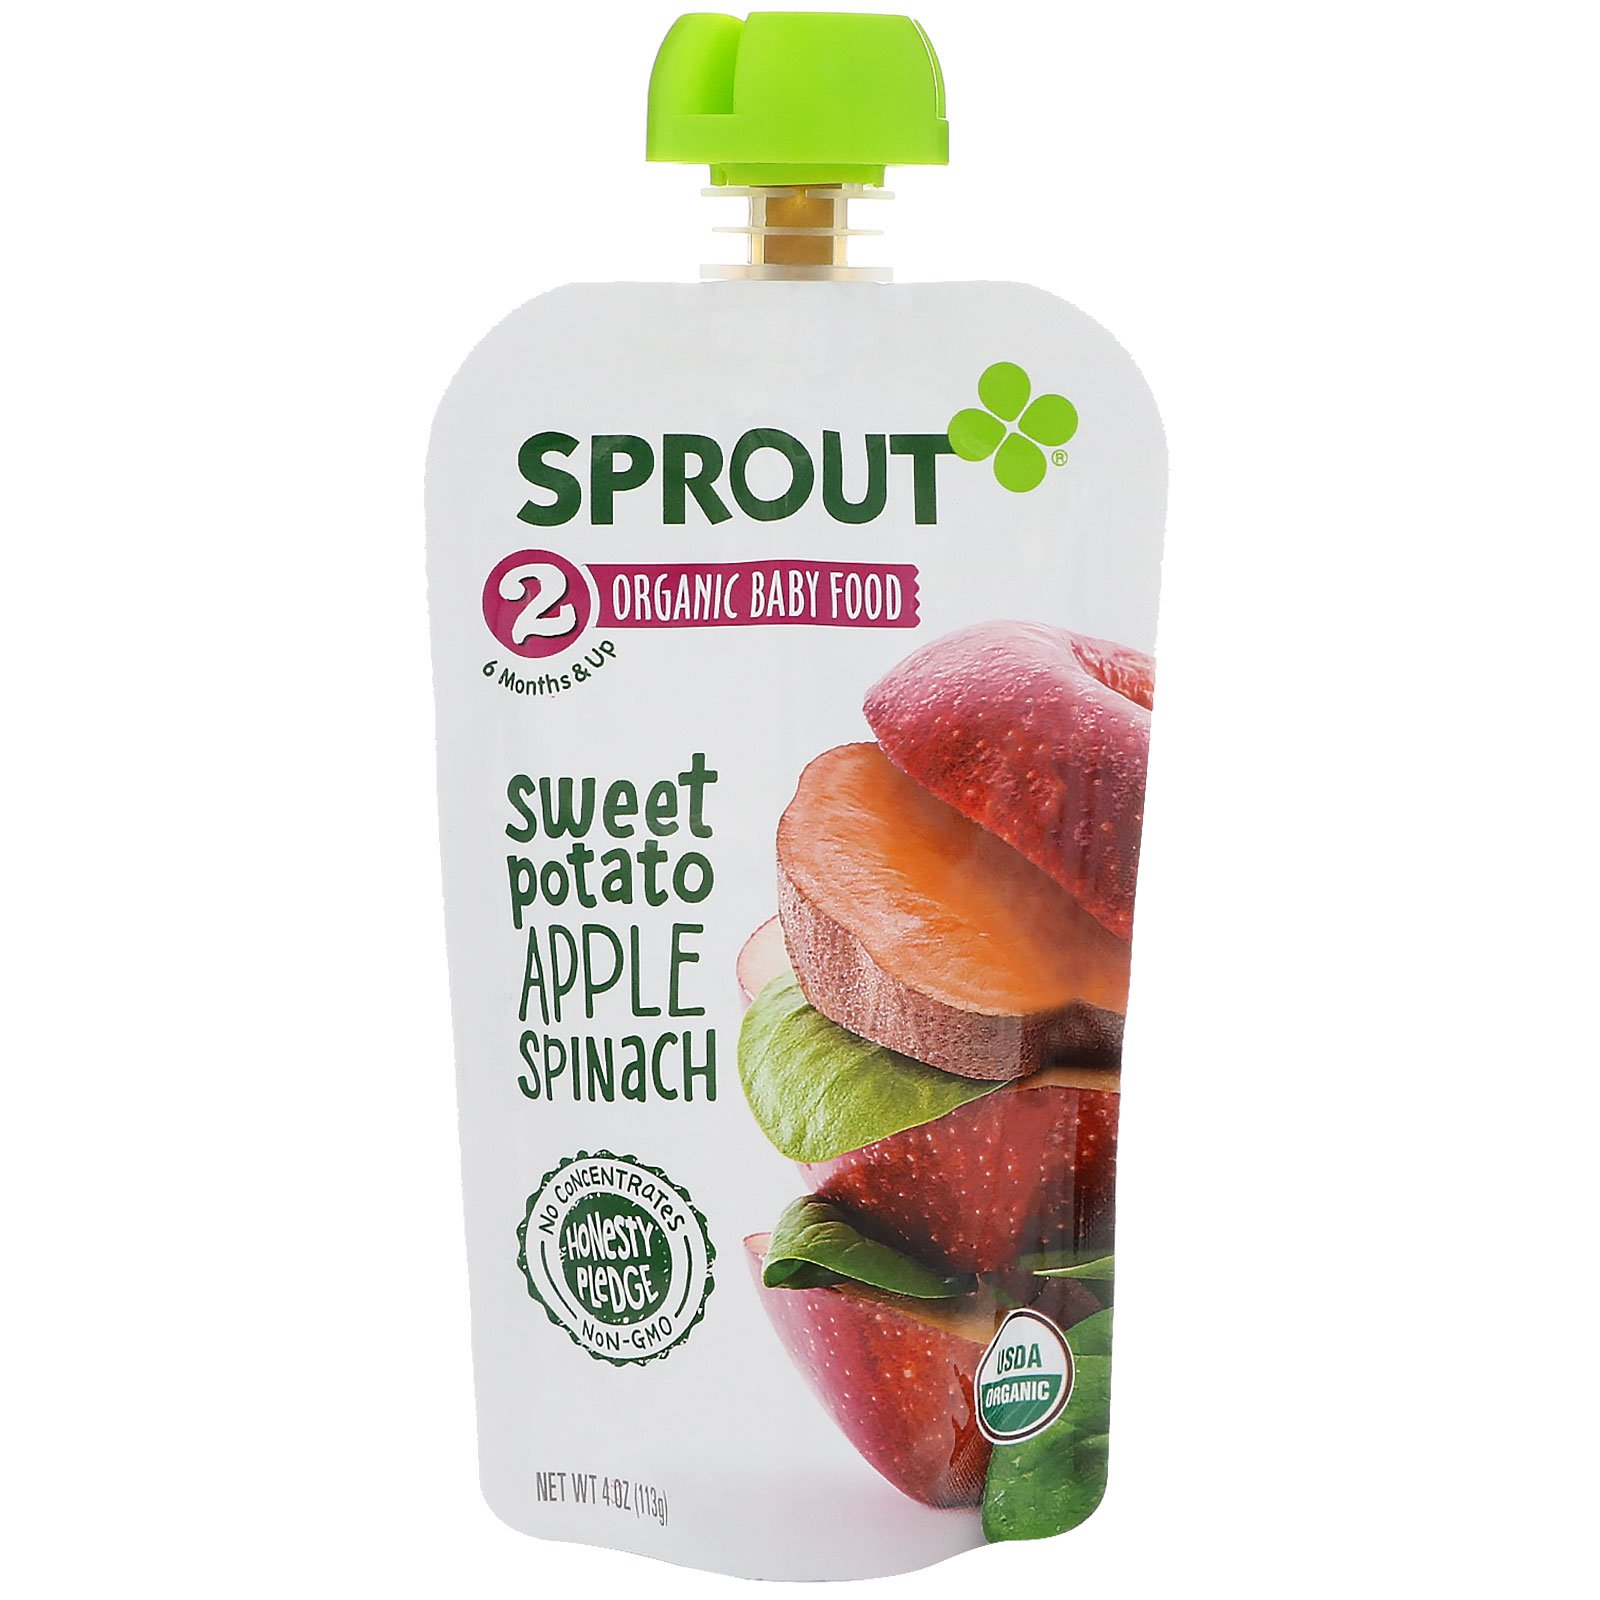 Sprout Organic Baby Food Stage 2 Sweet Potato Apple Spinach 4 oz 113 g